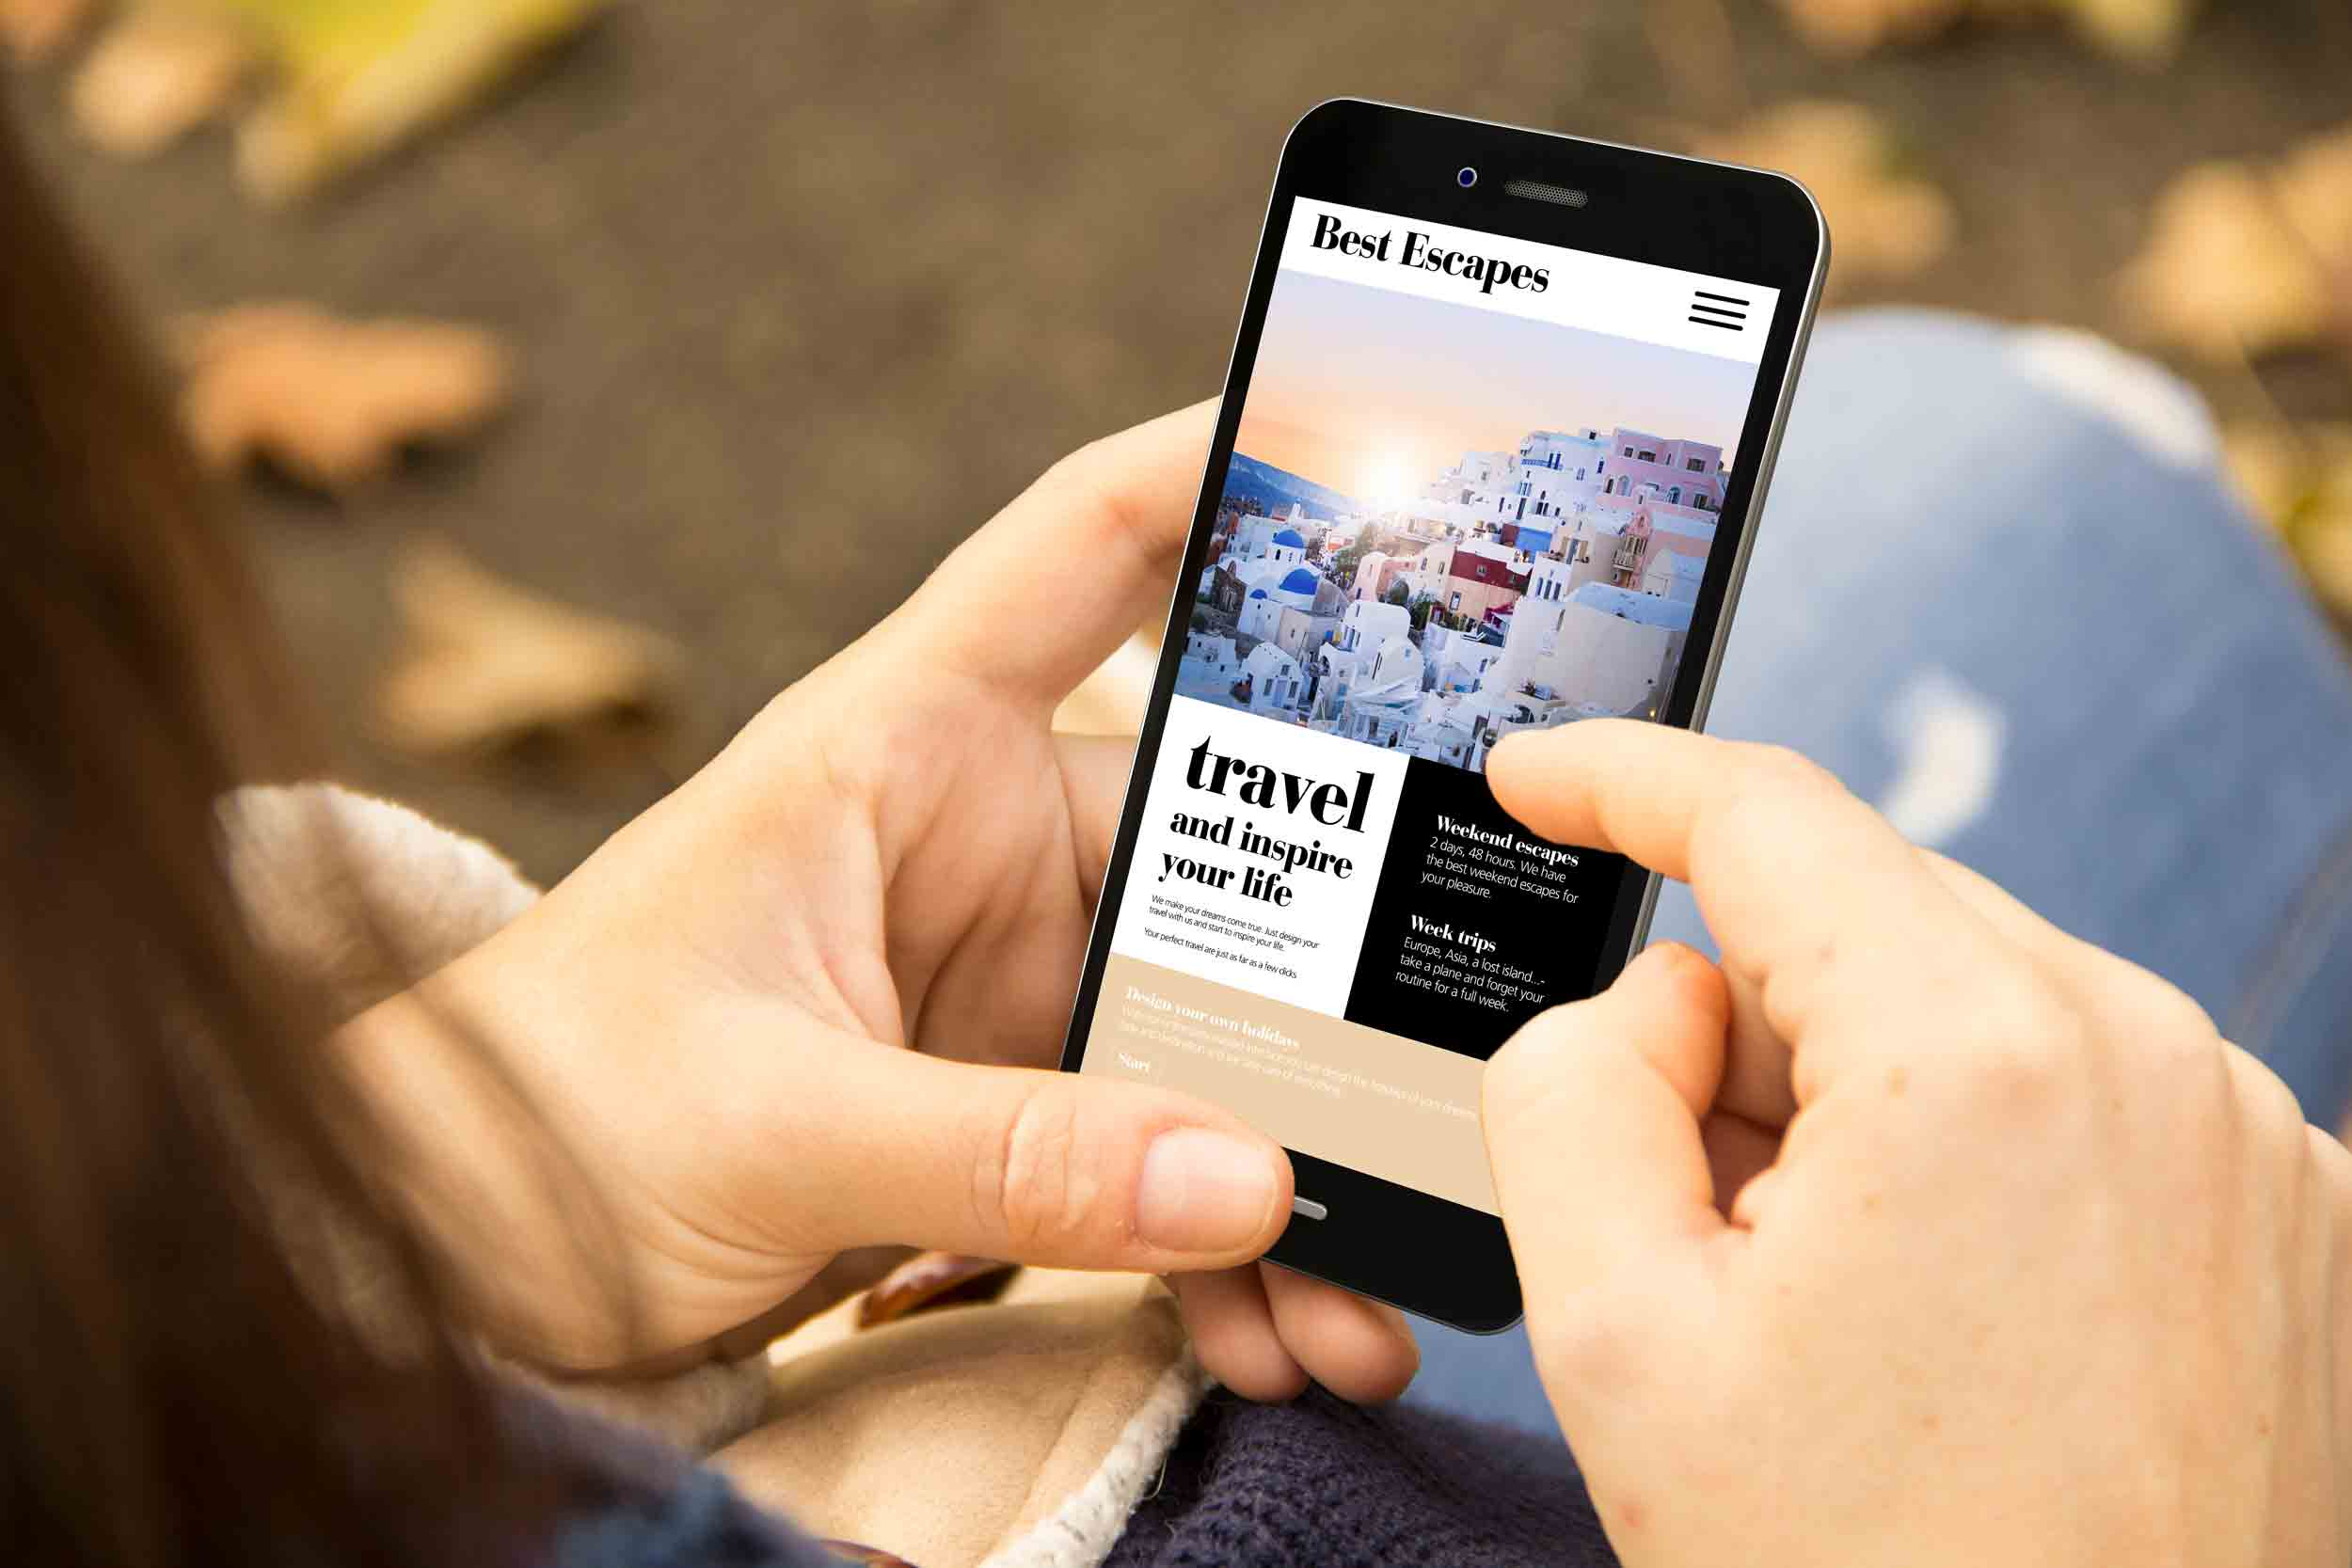 Responsive and fluid website design on a smart phone